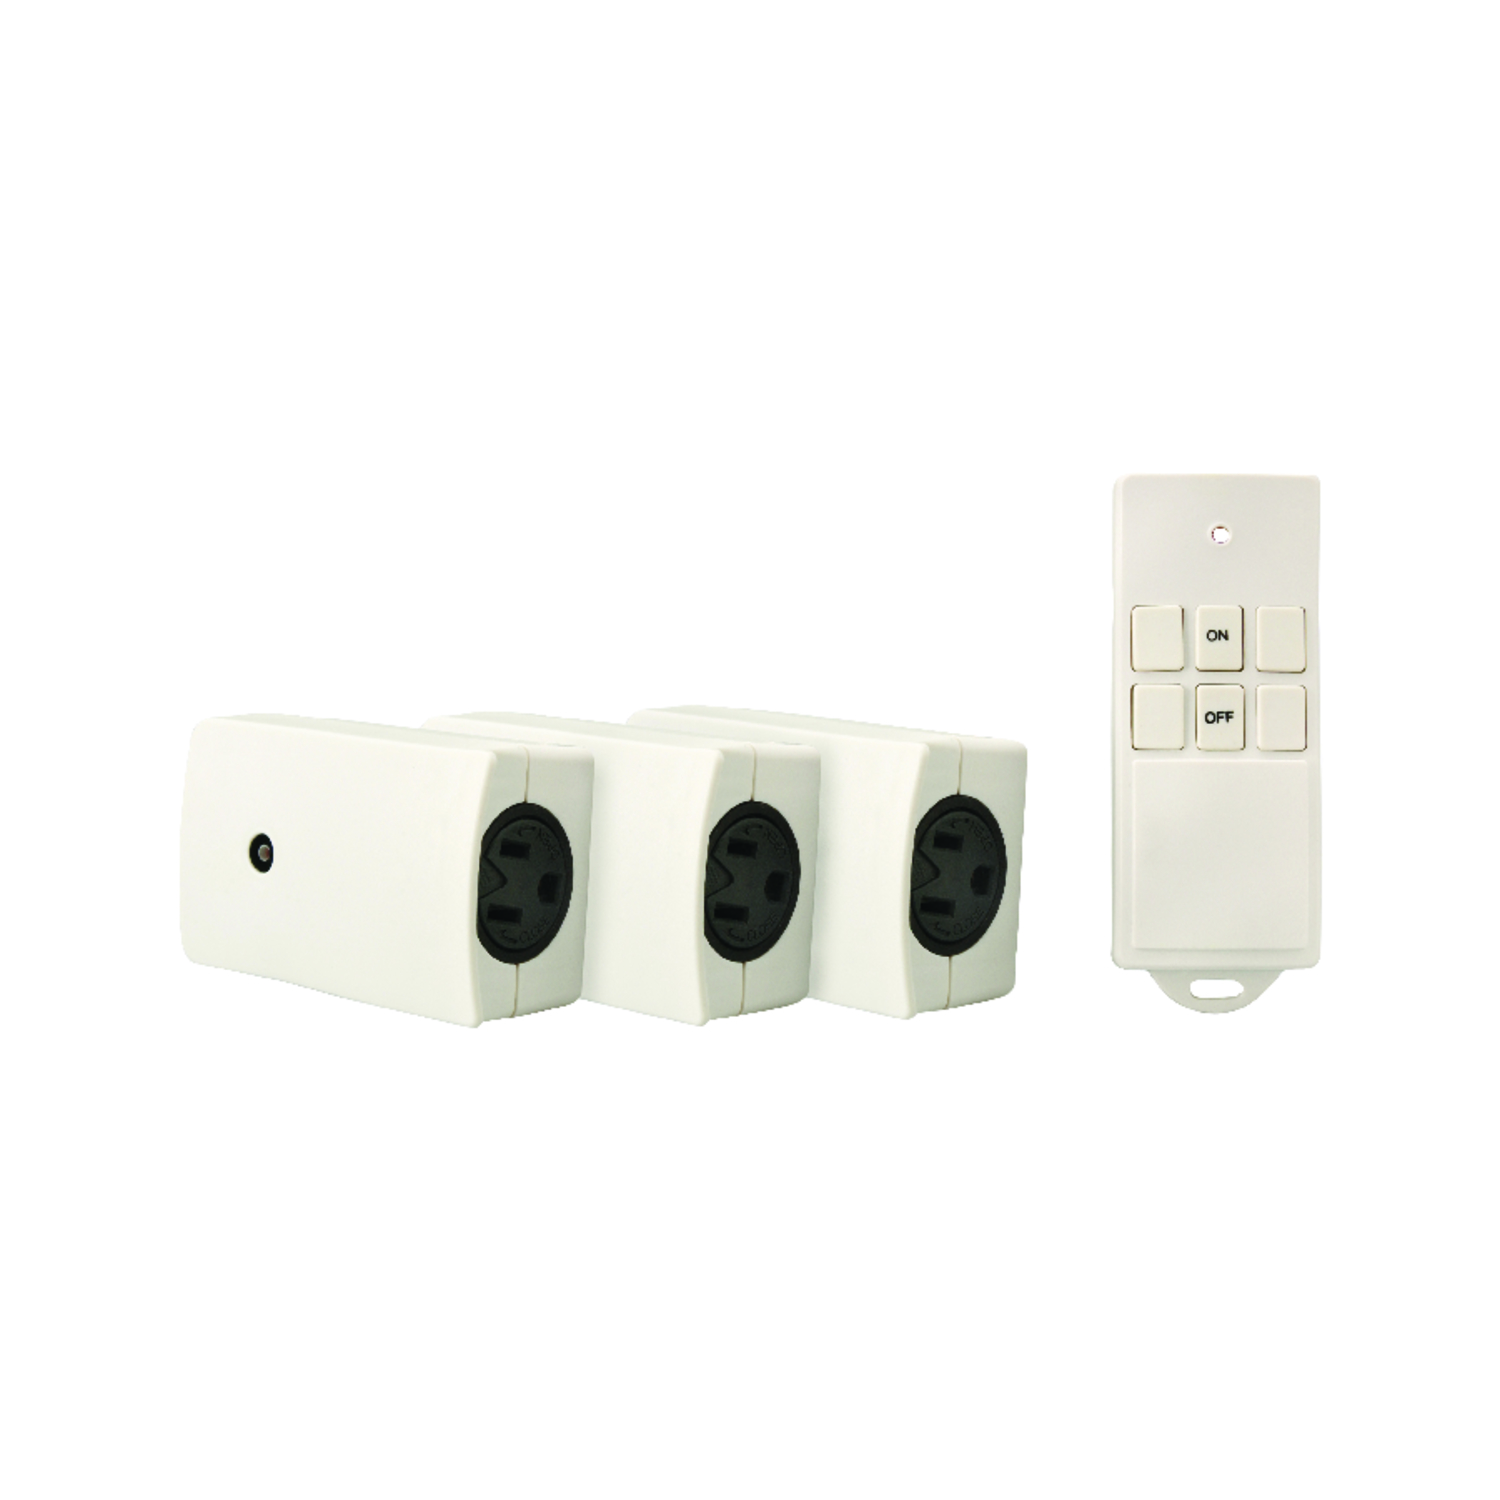 Woods  Wireless  White  3 pk 13 amps Appliance Switch